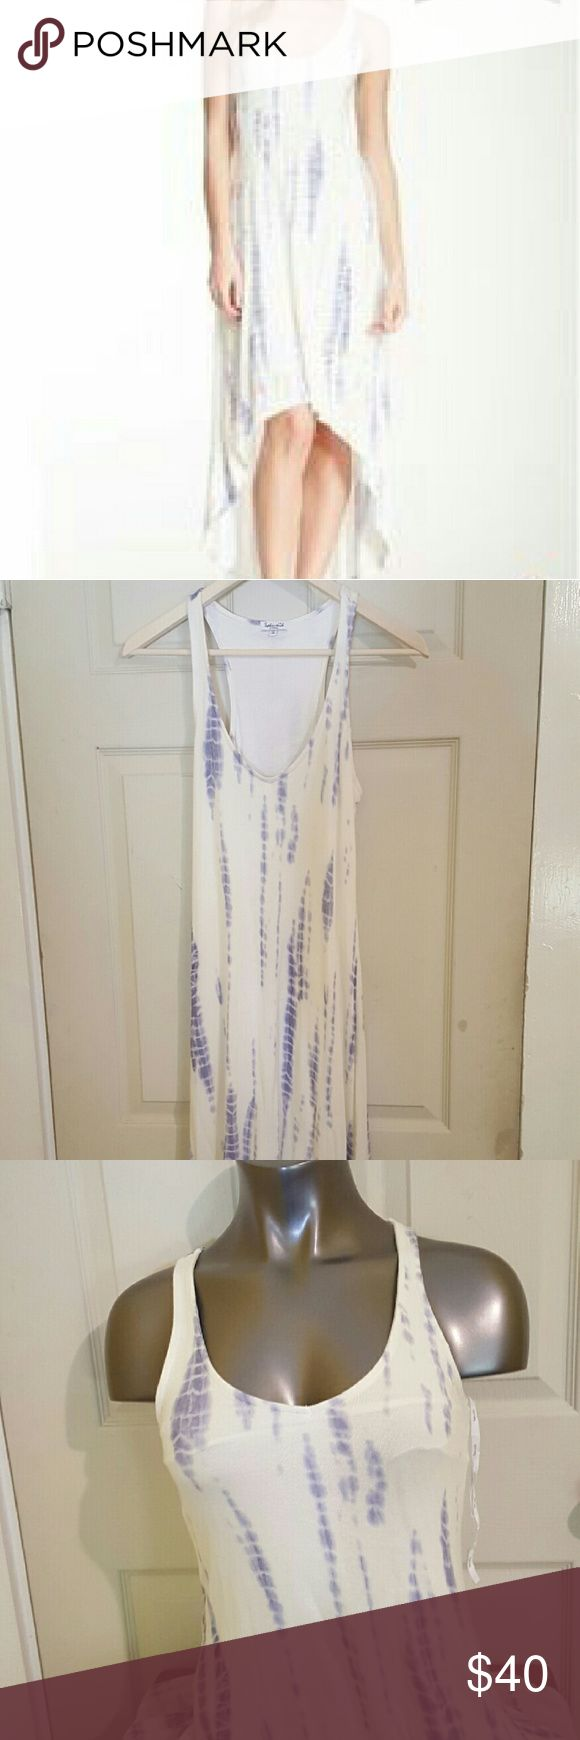 Anthropologie brand Splendid High Low Maxi Size XS Smoke free home  Excellent condition  Lined Maxi dress  Ivory and lilac  Super Cute!!! Splendid Dresses High Low